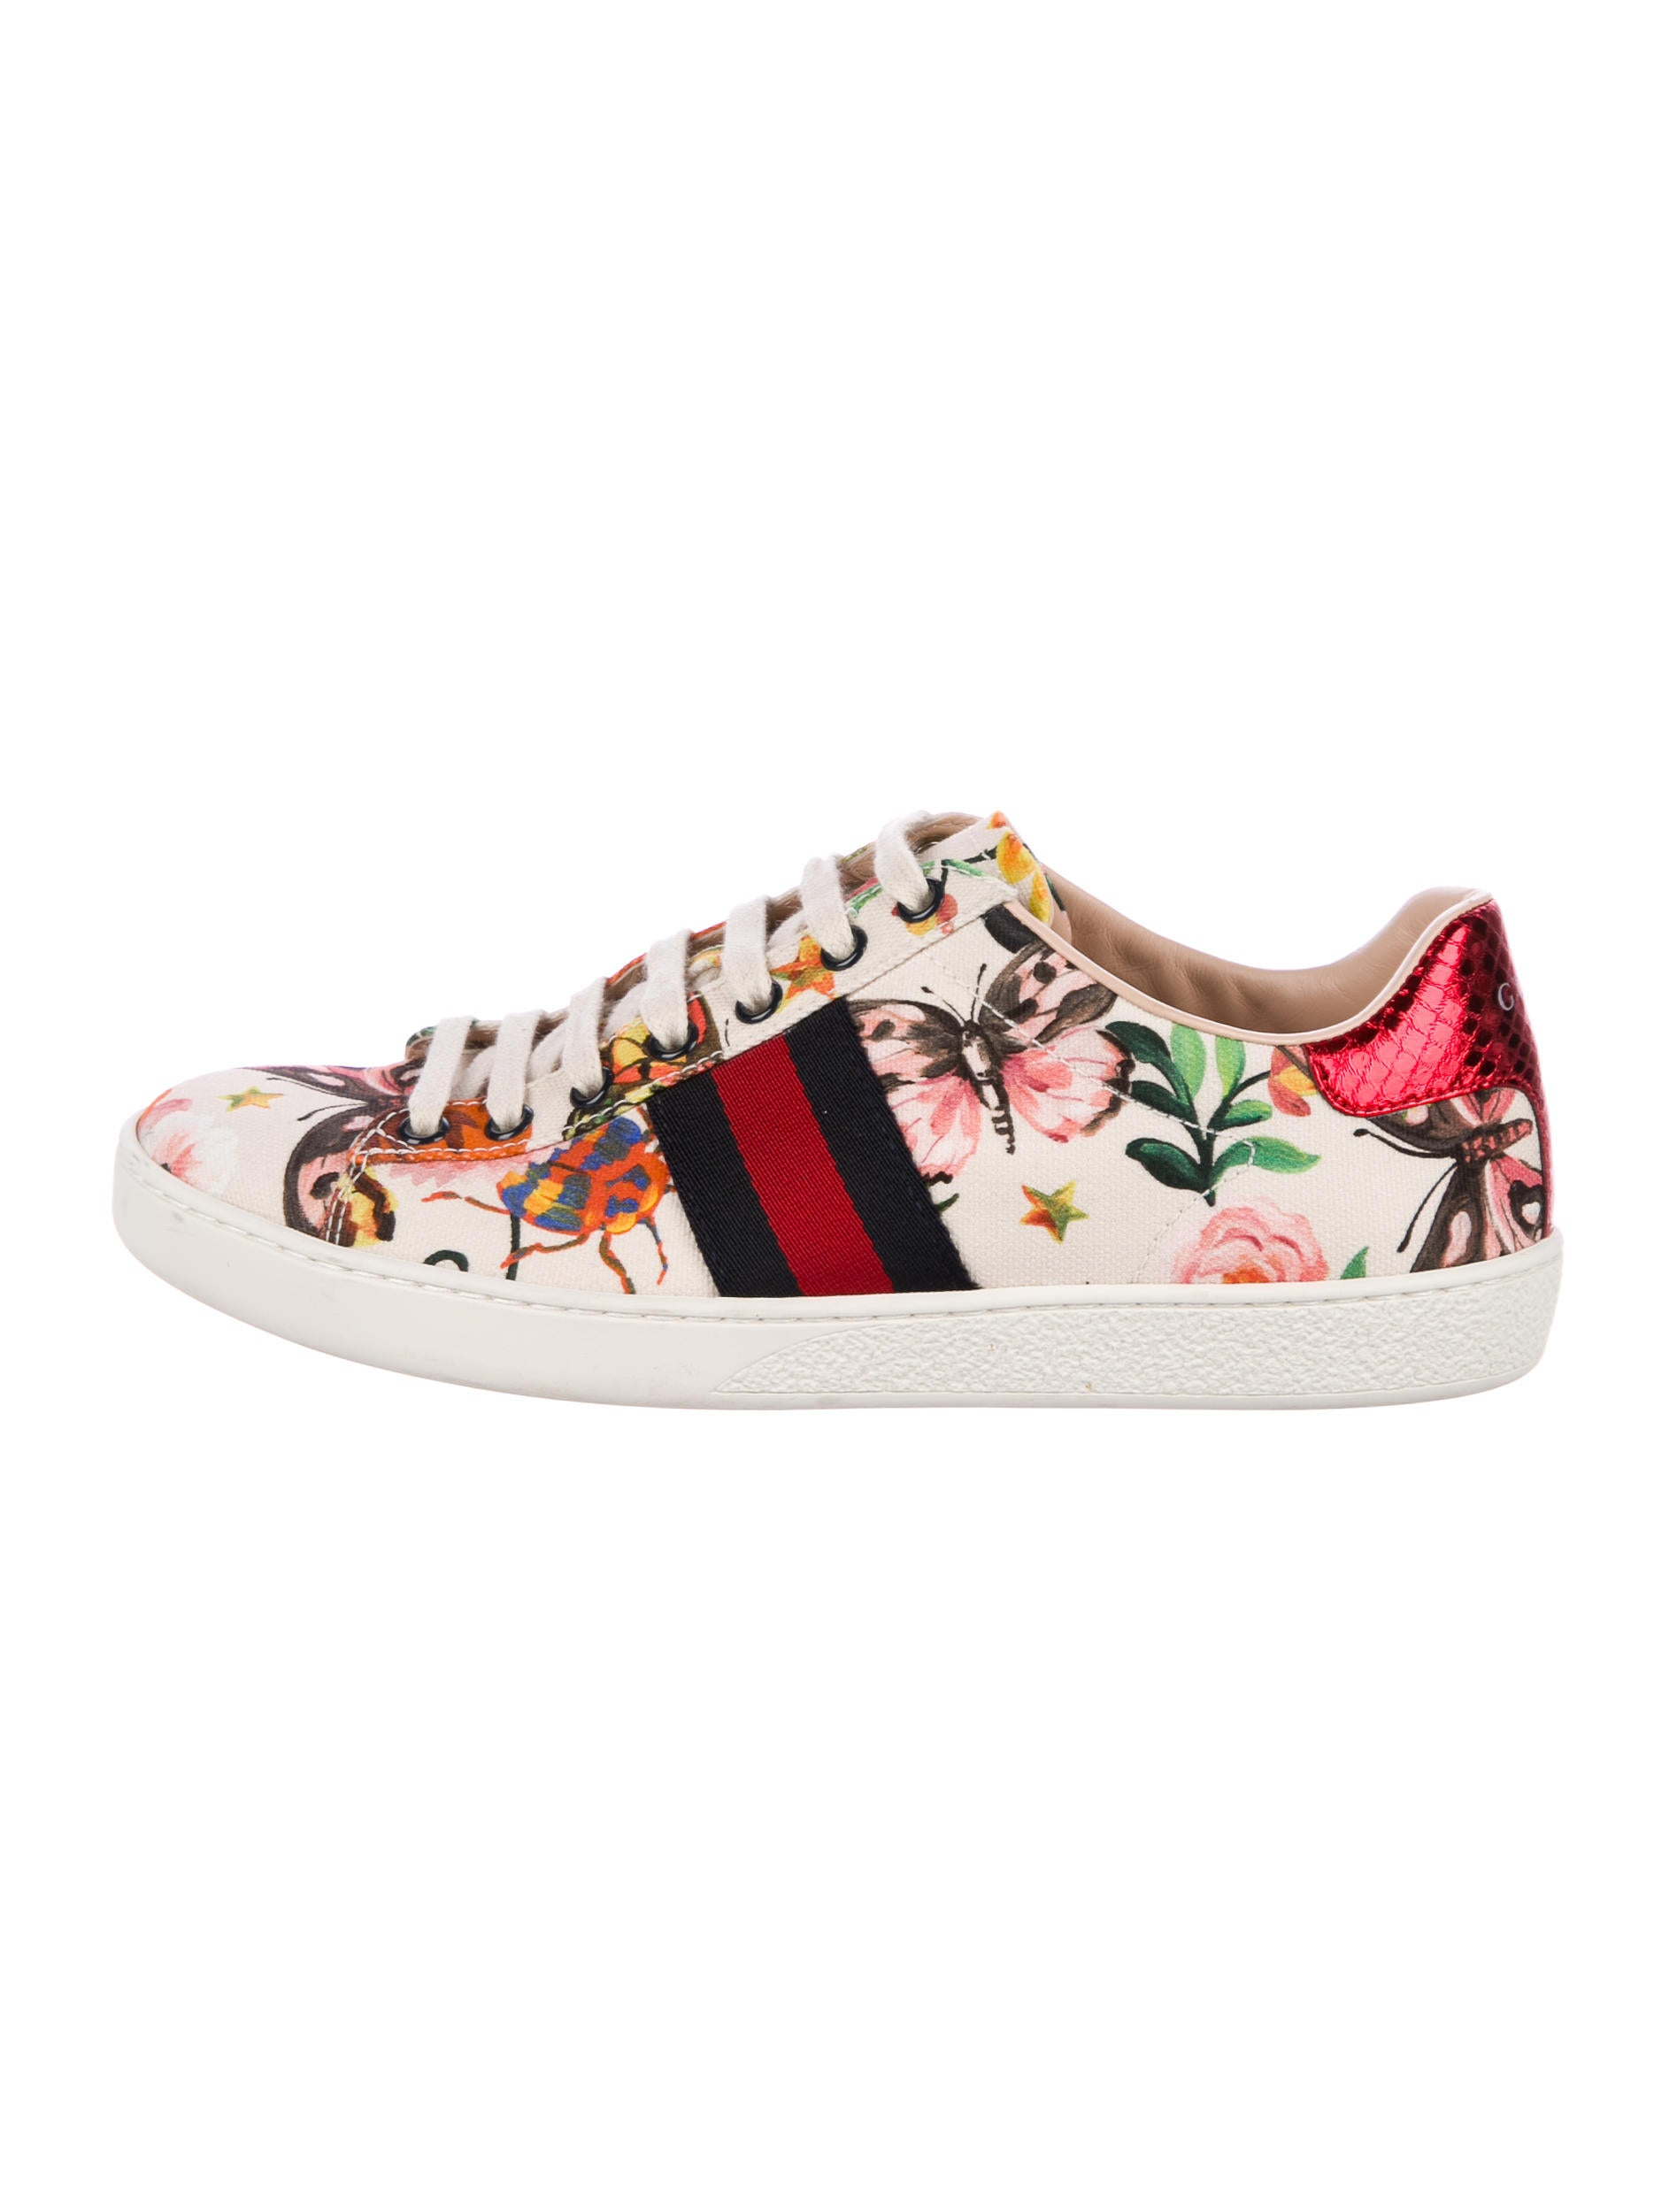 c73fc26cb38 Gucci Garden Exclusive Ace Sneakers - Shoes - GUC182069